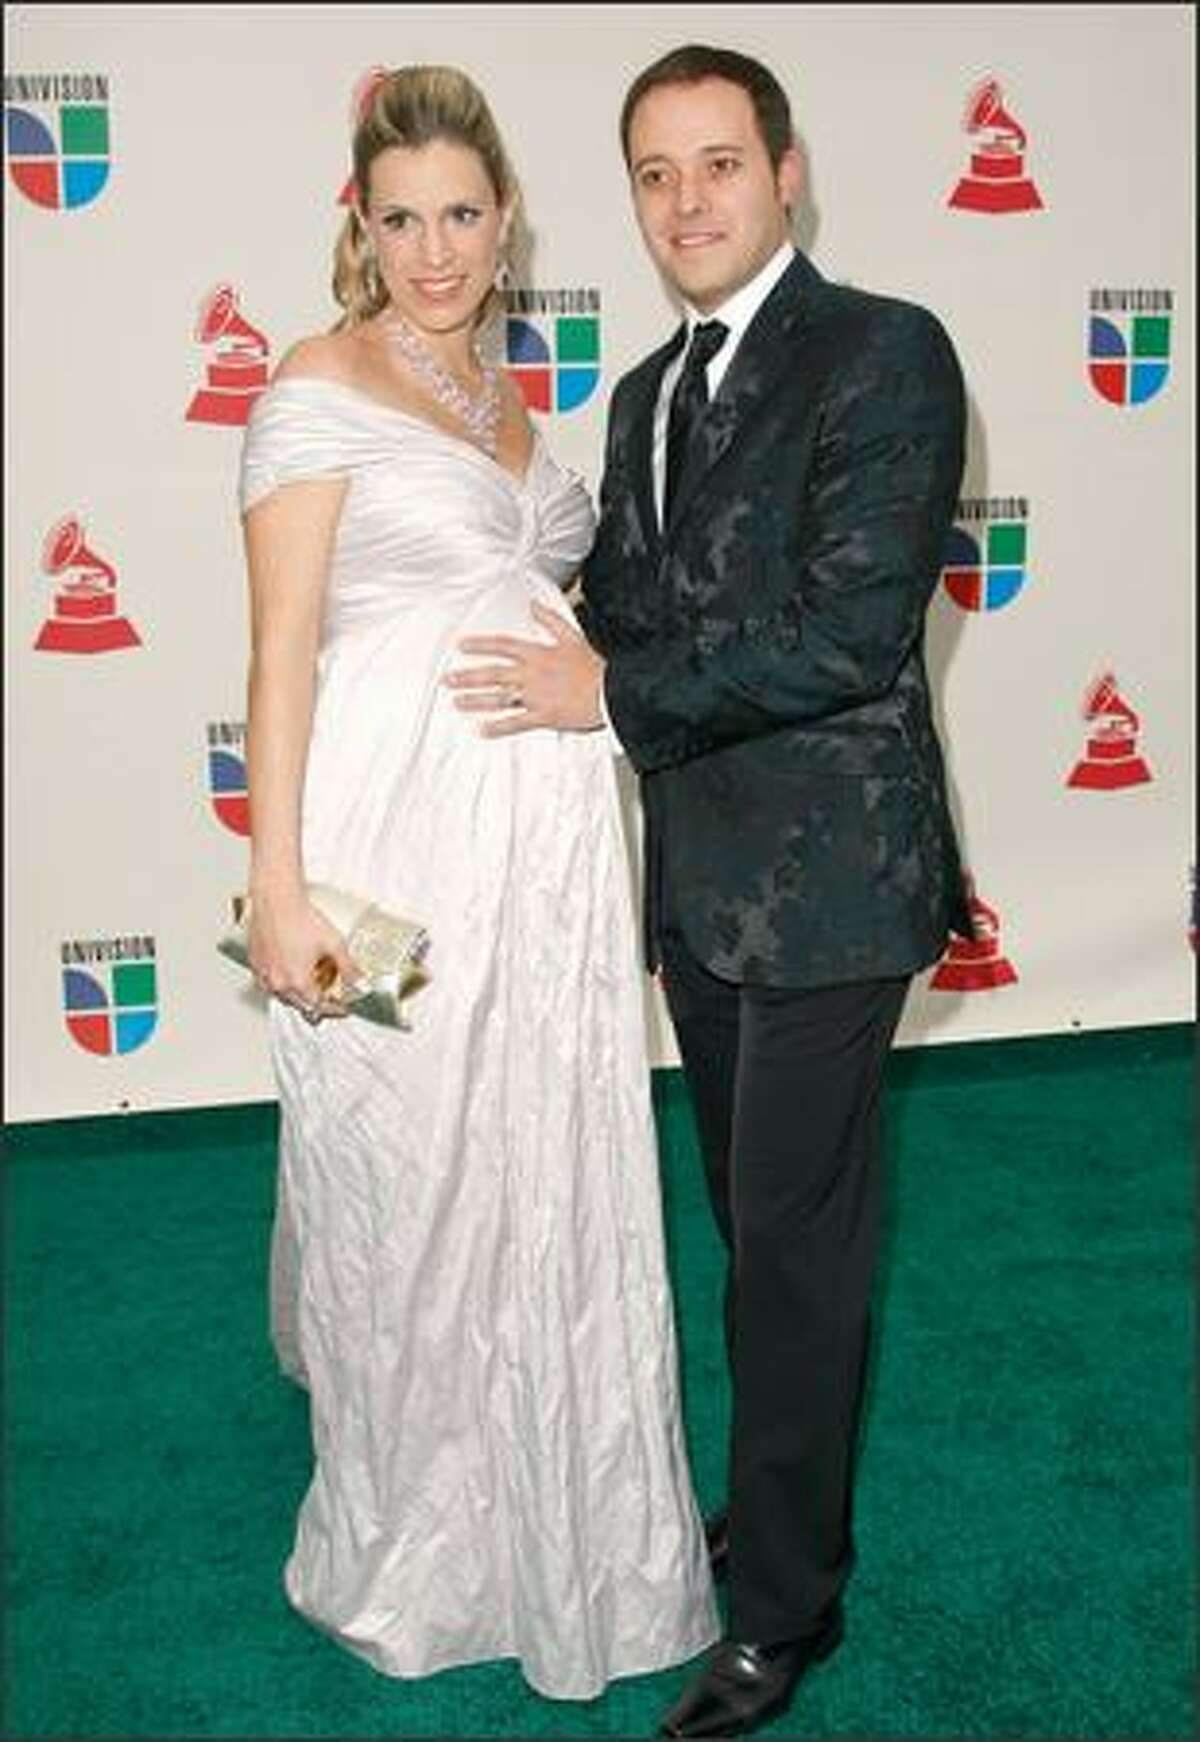 Musician Andre Valadao (right) and his wife Cassi arrive at the ninth annual Latin Grammy awards held at the Toyota Center in Houston on Thursday.